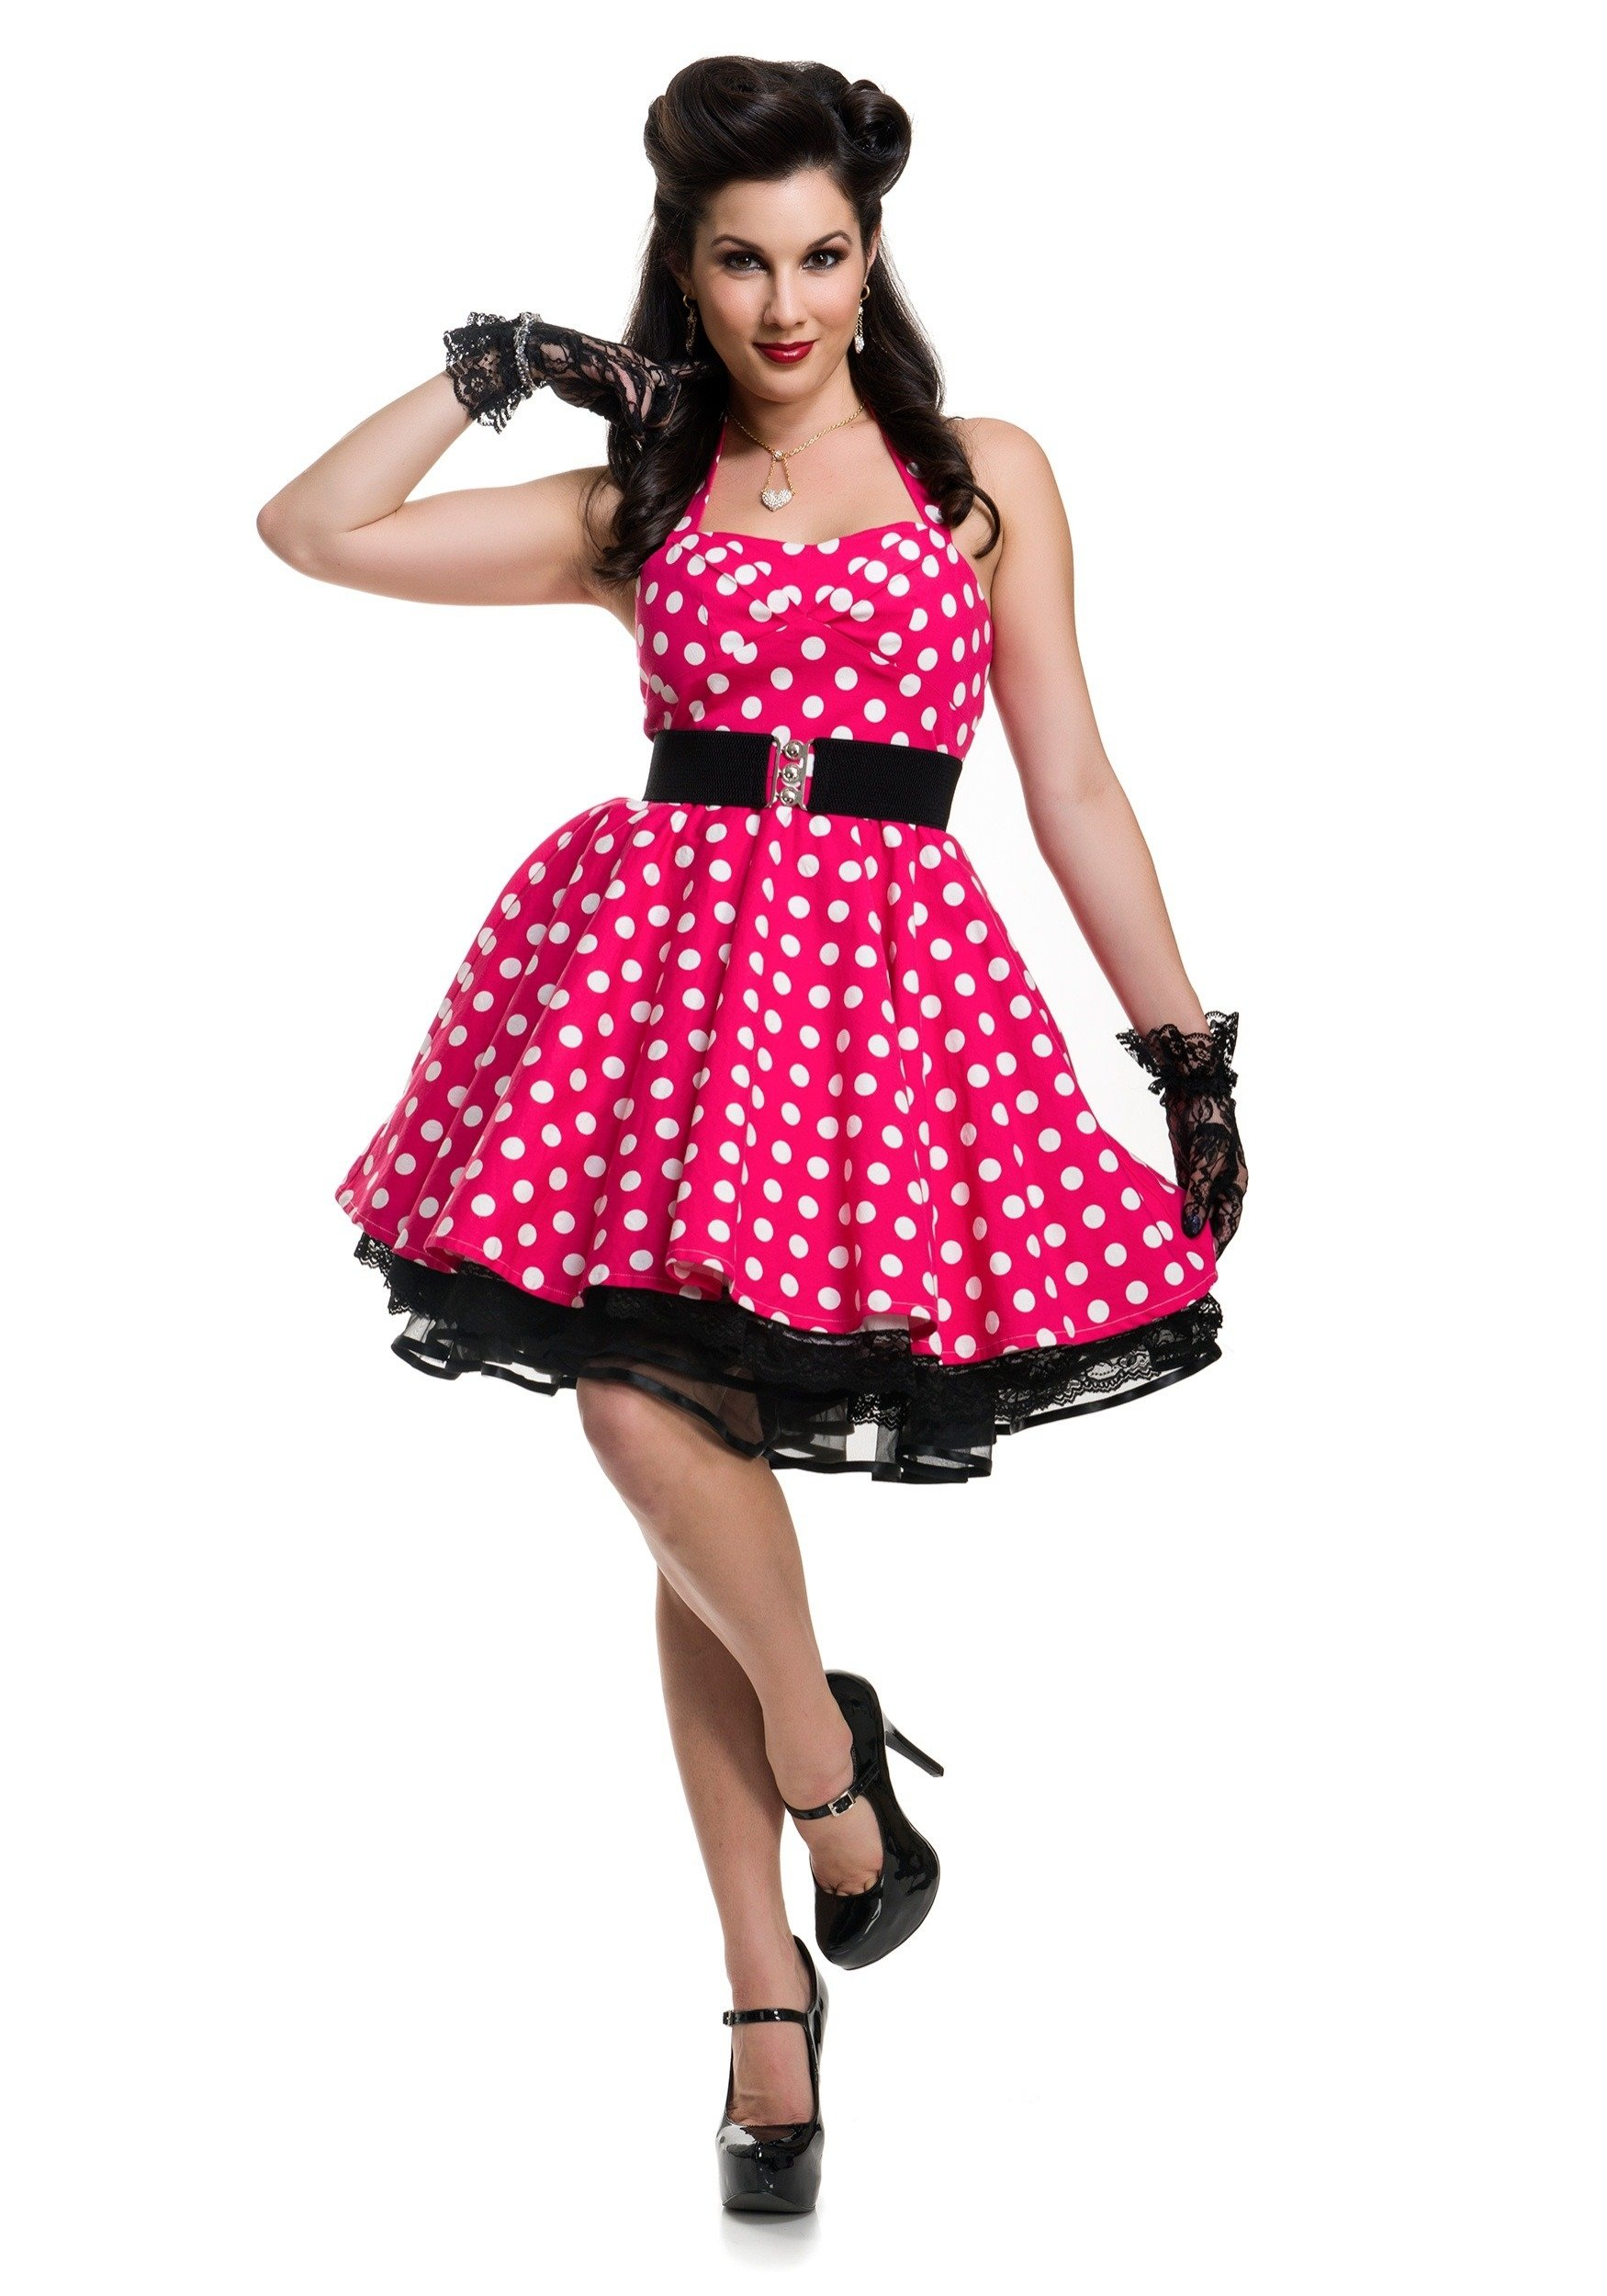 10 Stunning Pin Up Girl Outfit Ideas womens pink polka dot pin up costume 3